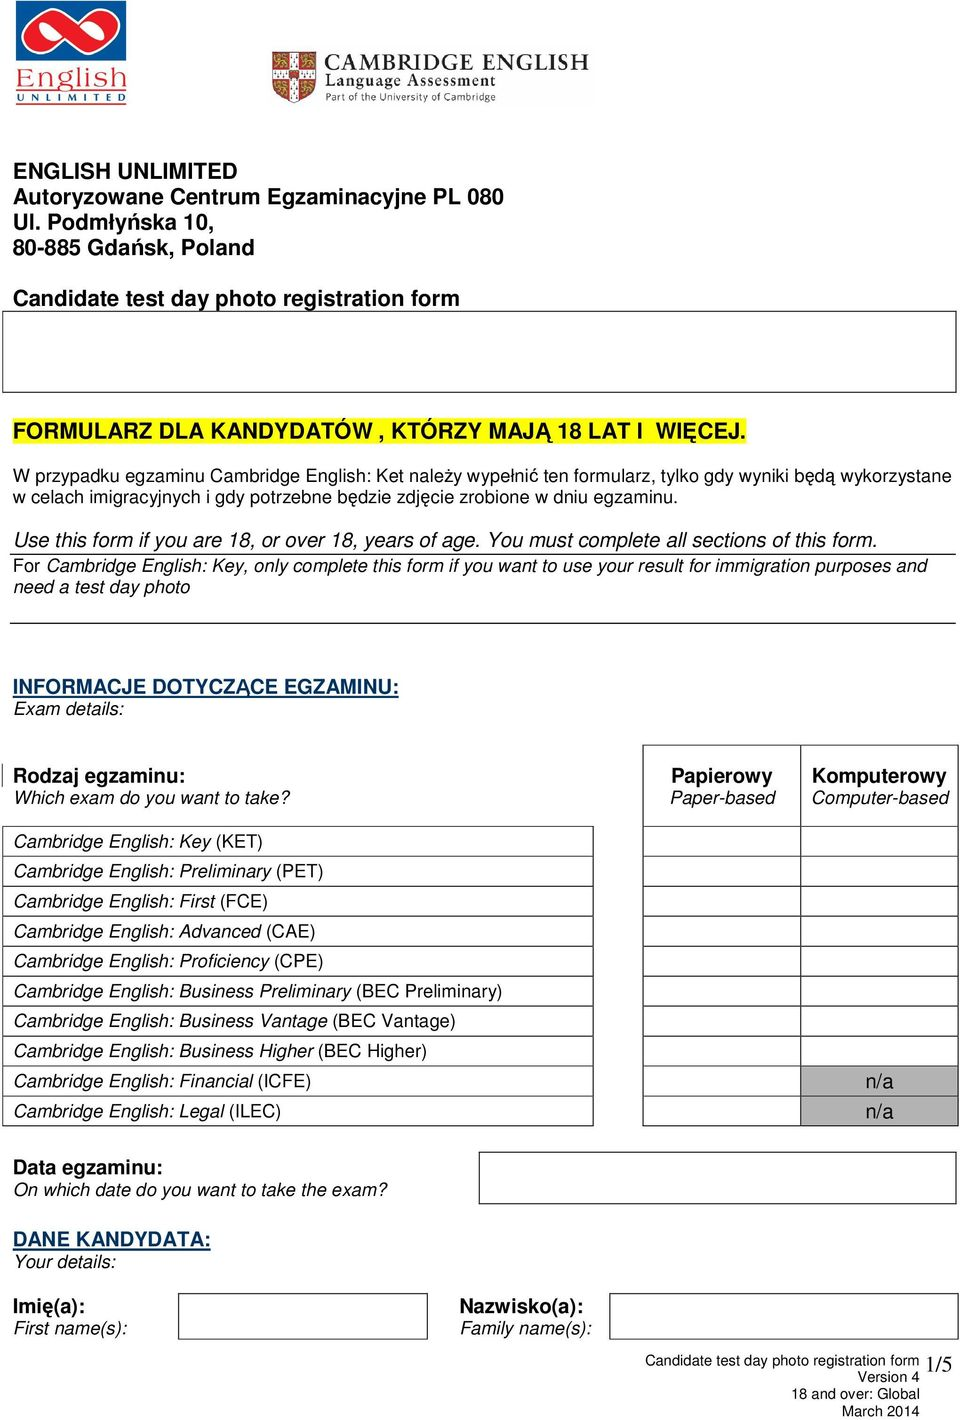 Use this form if you are 18, or over 18, years of age. You must complete all sections of this form.